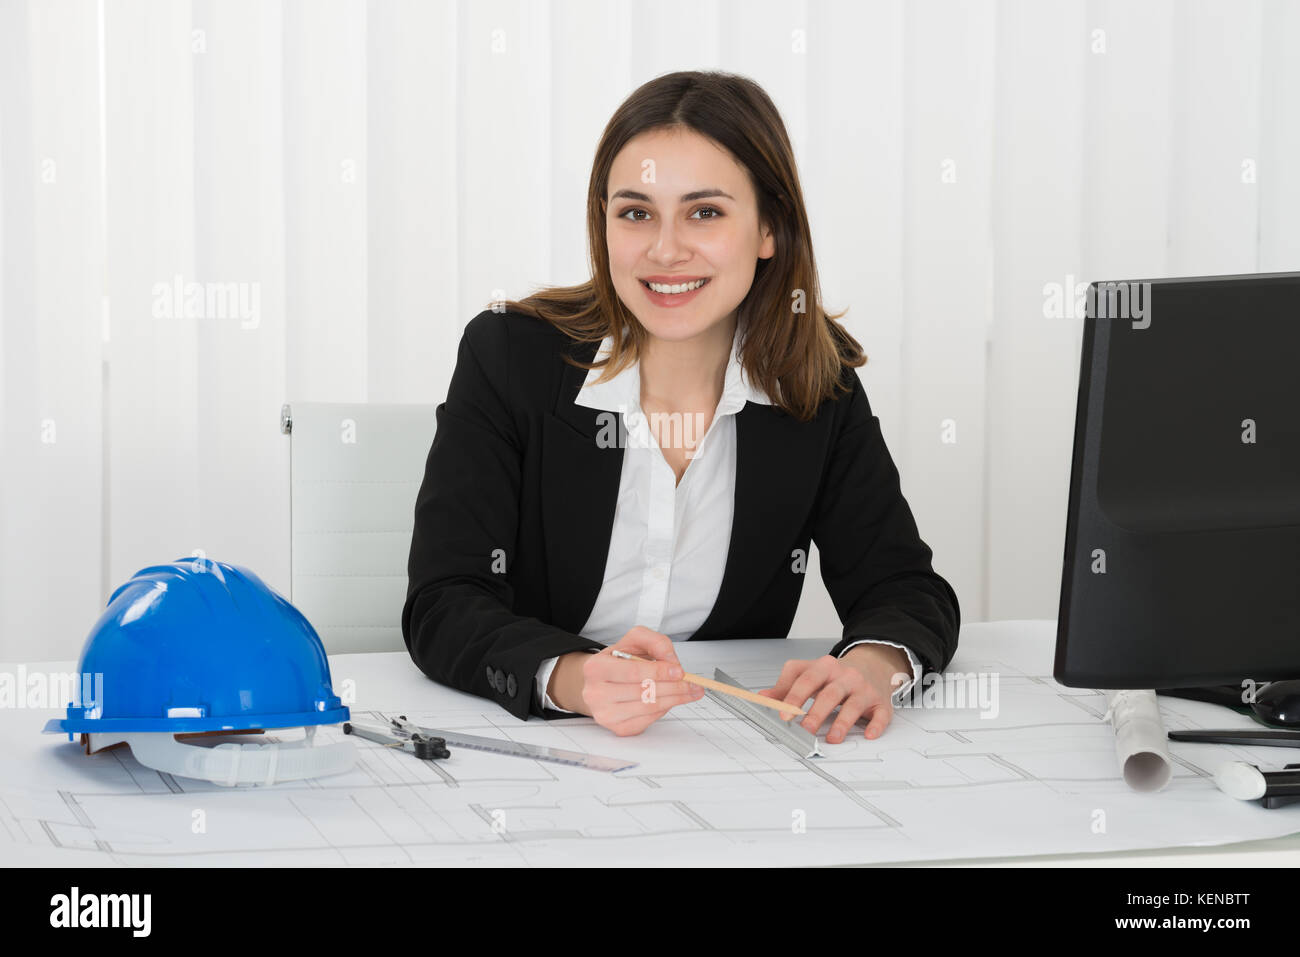 Young Happy Female Architect Drawing Blueprint In The Office - Stock Image